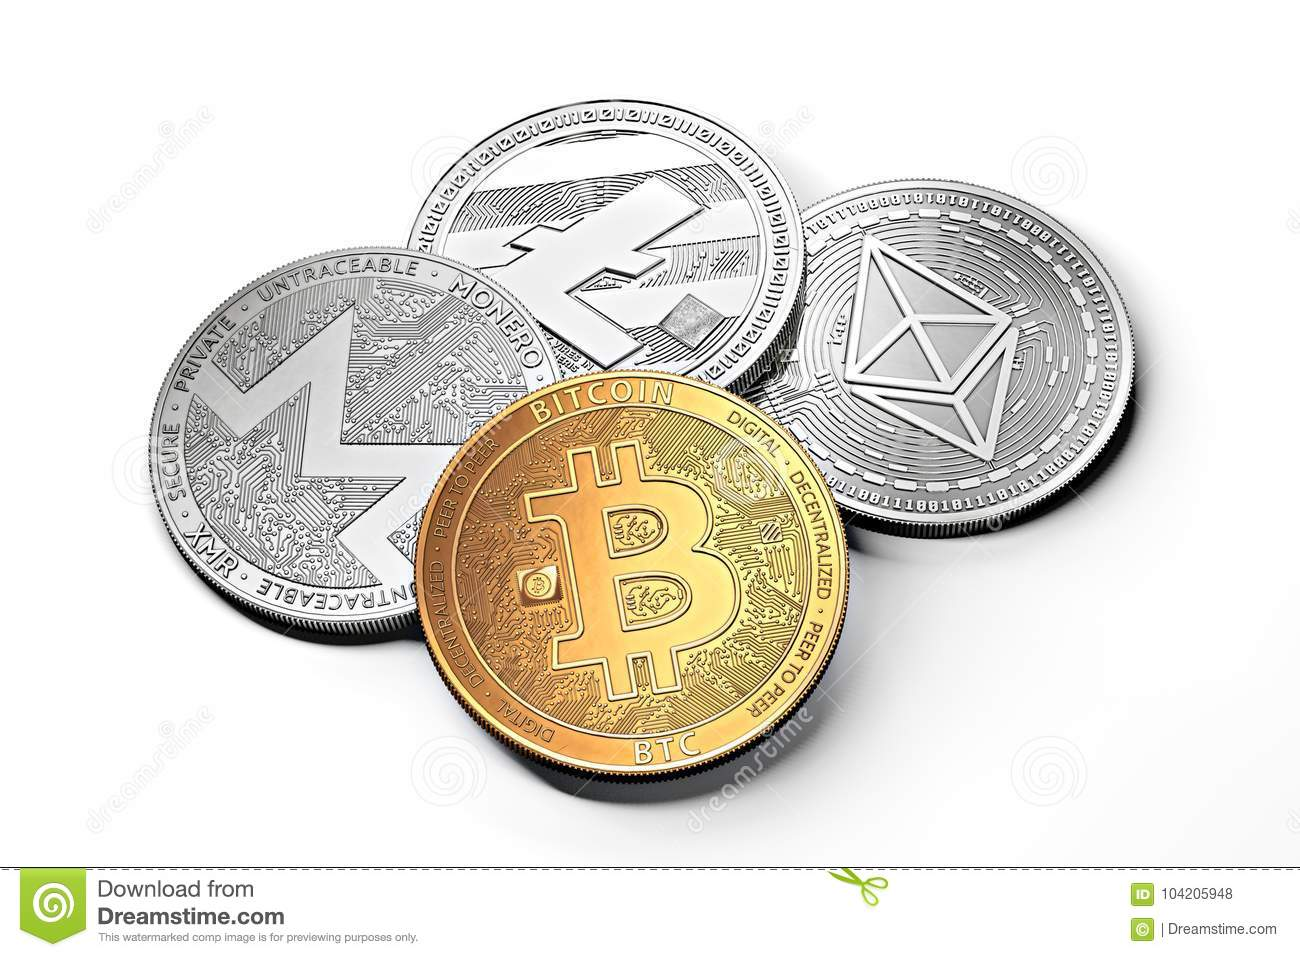 Stack of cryptocurrencies: bitcoin, ethereum, litecoin, monero, dash, and ripple coin together, isolated on white.